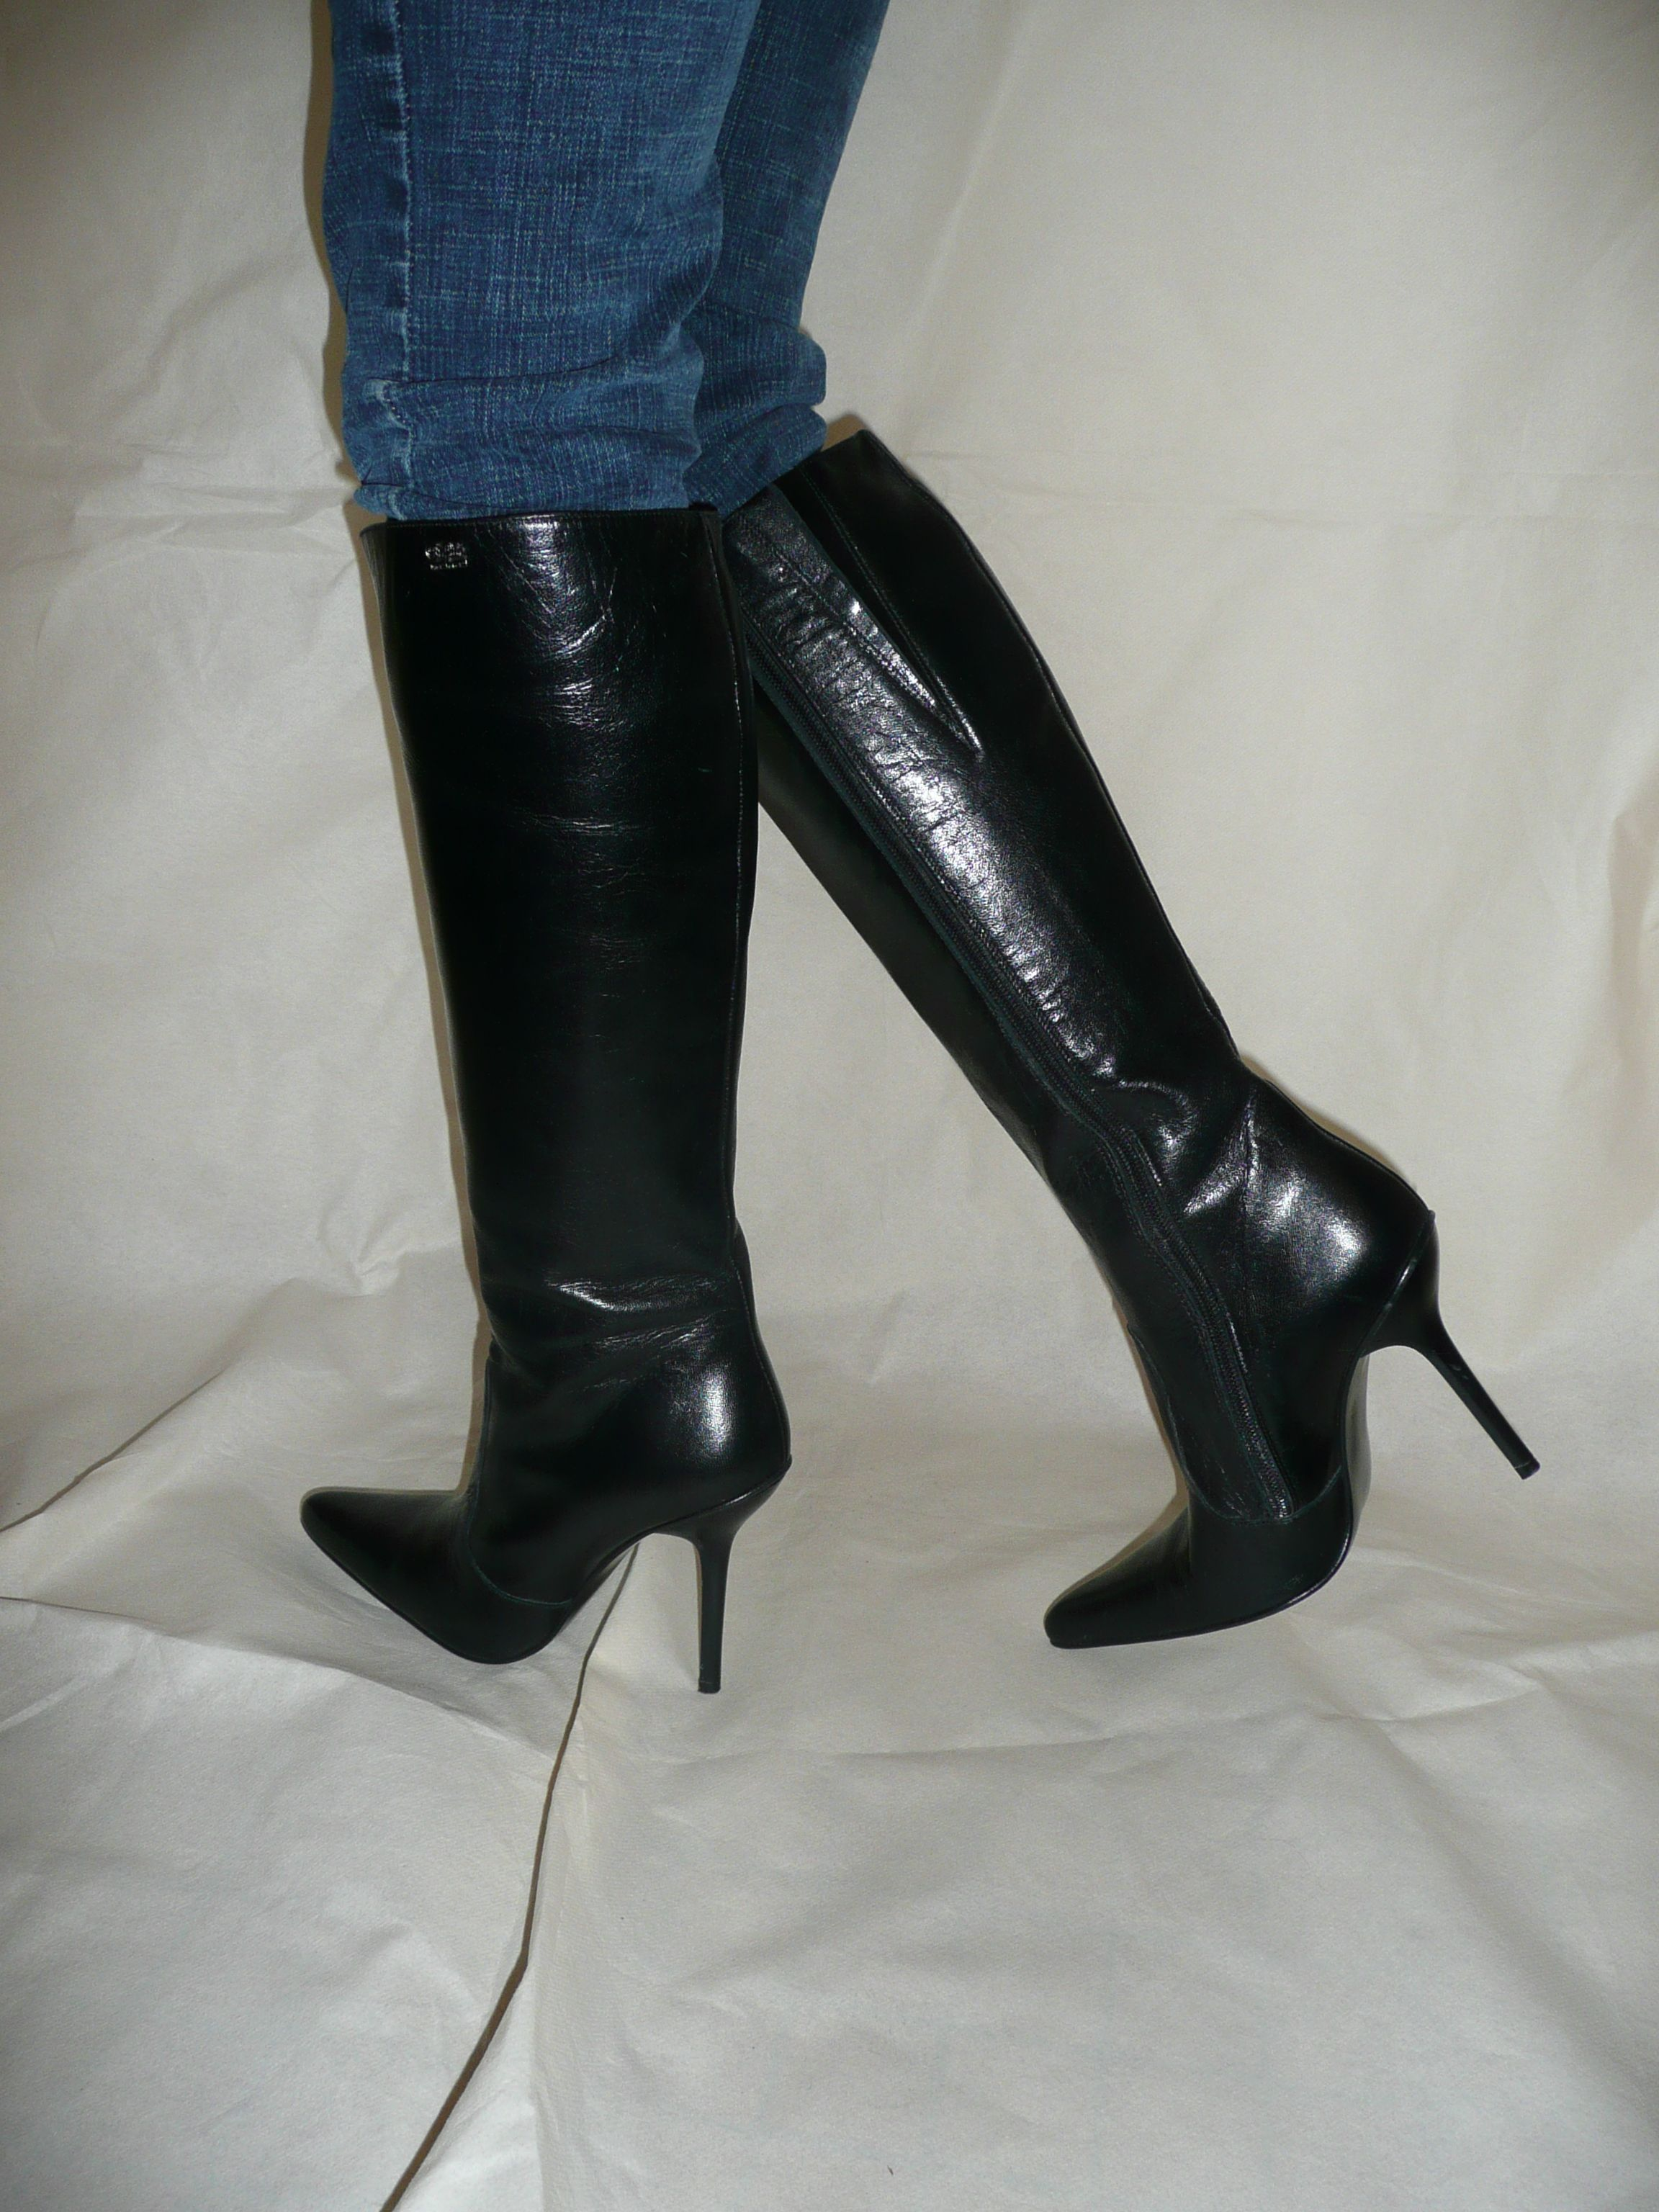 c104d1384eeb13 Image result for 11480 Buffalo Boots